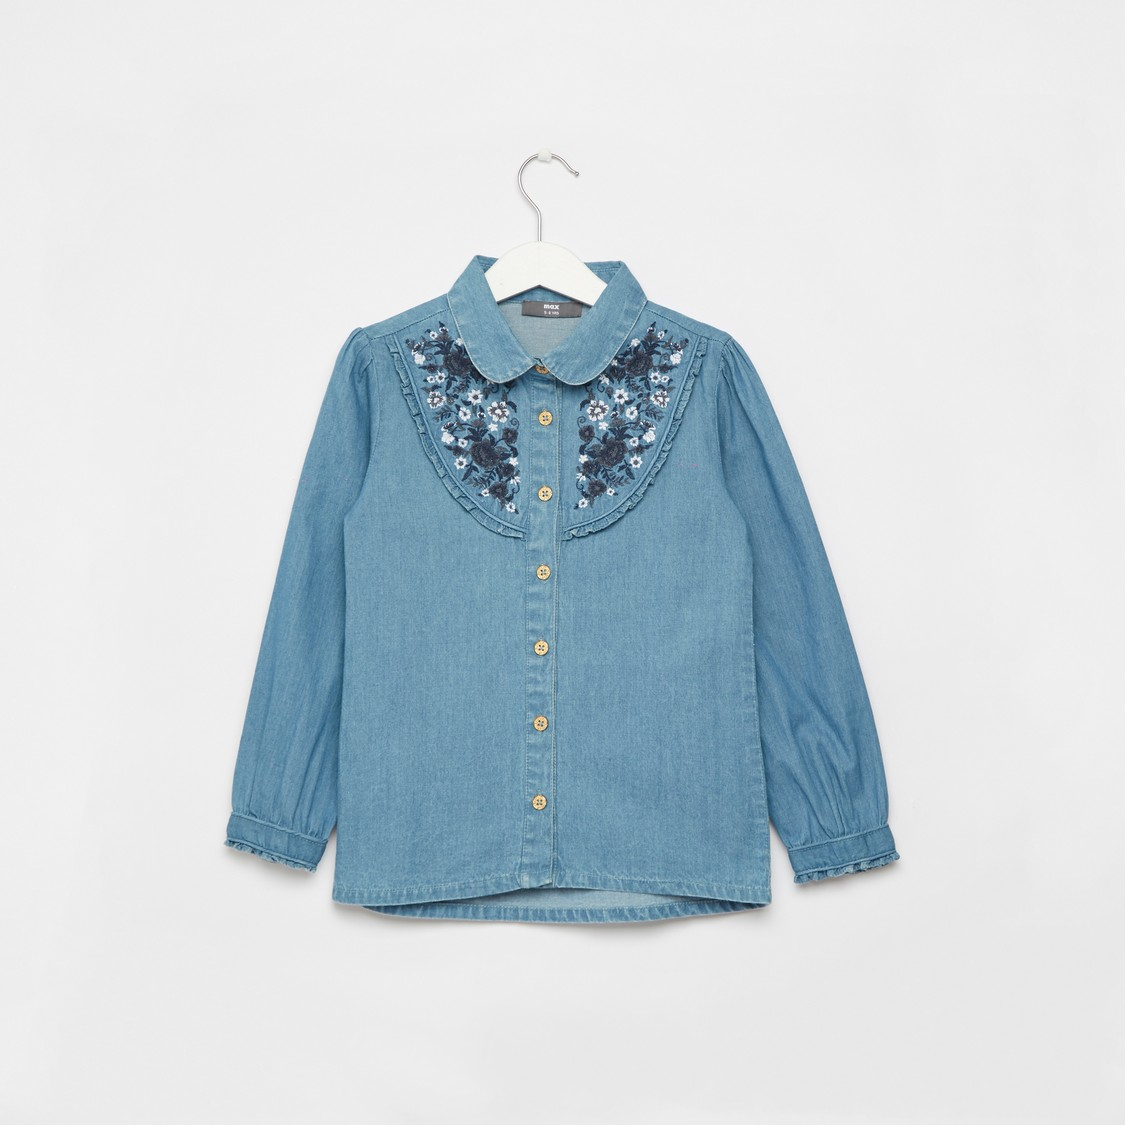 Embroidered Yoke Denim Shirt with Long Sleeves